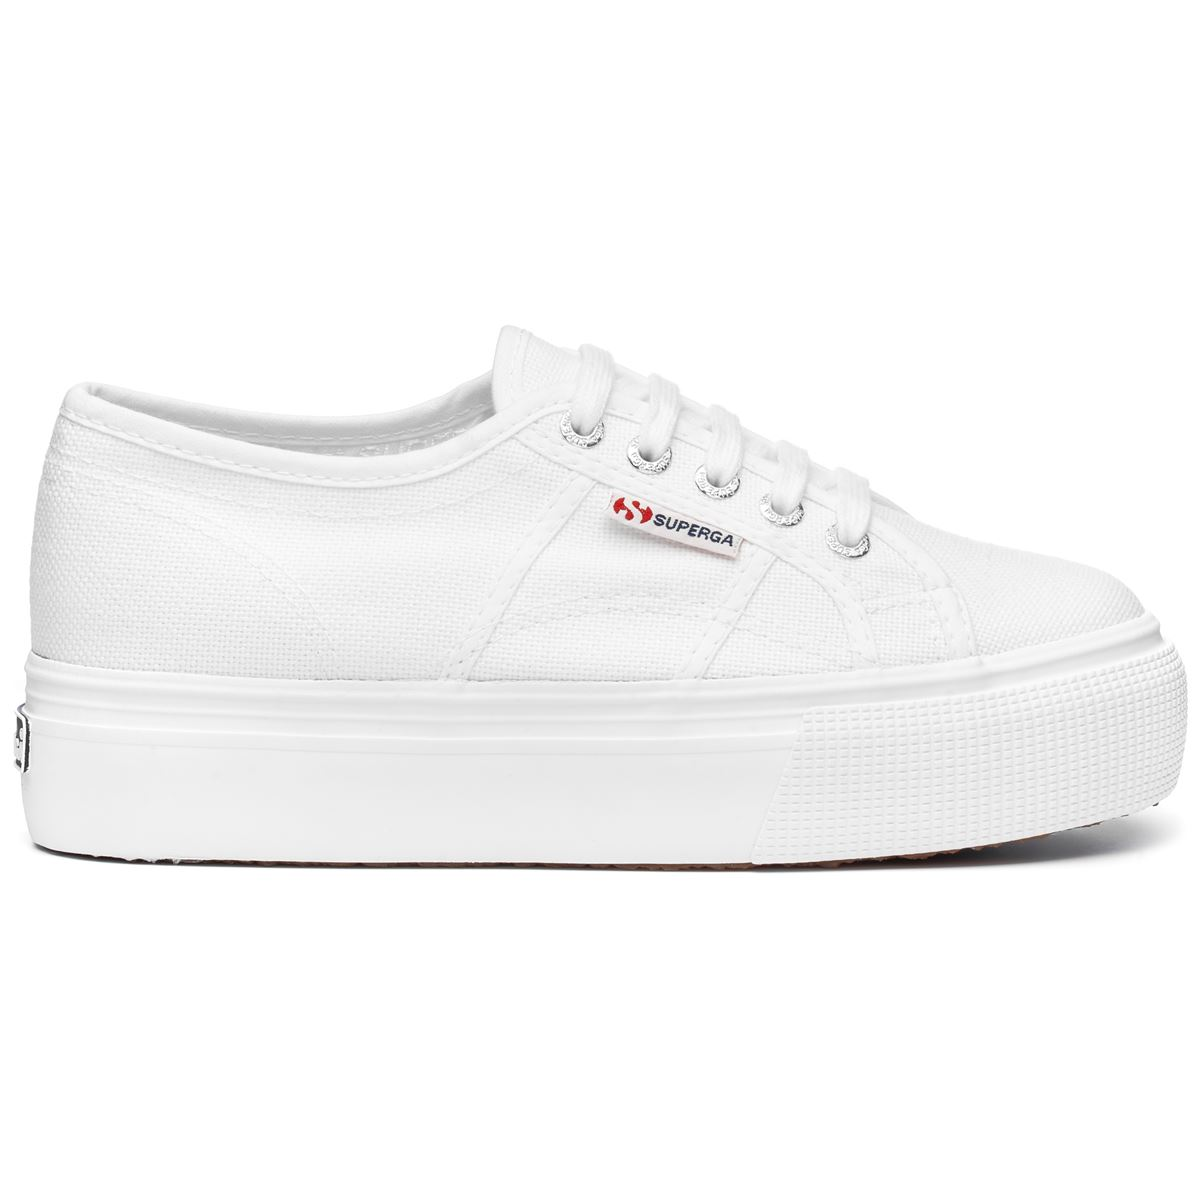 Superga ACOTW LINEA UP AND DOWN TOTAL WHITE